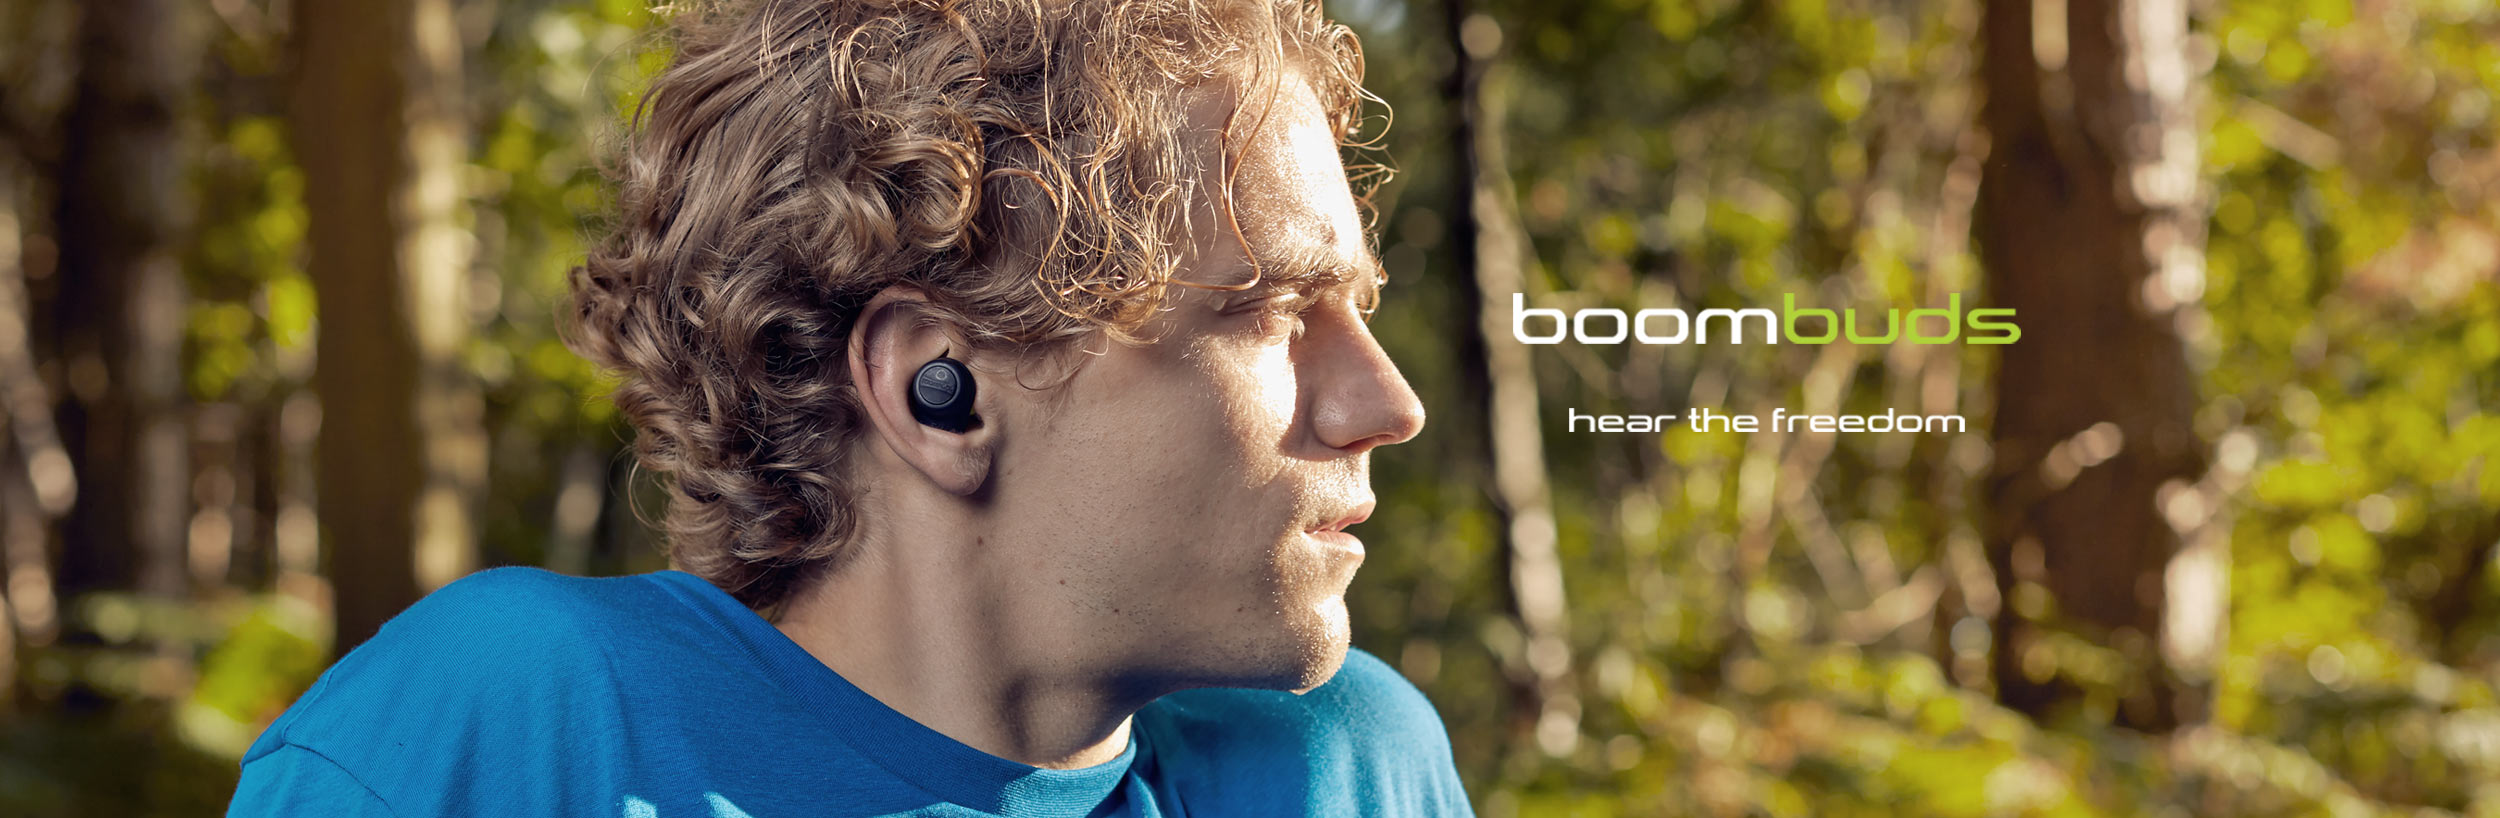 Boompods boombuds - wireless earbuds